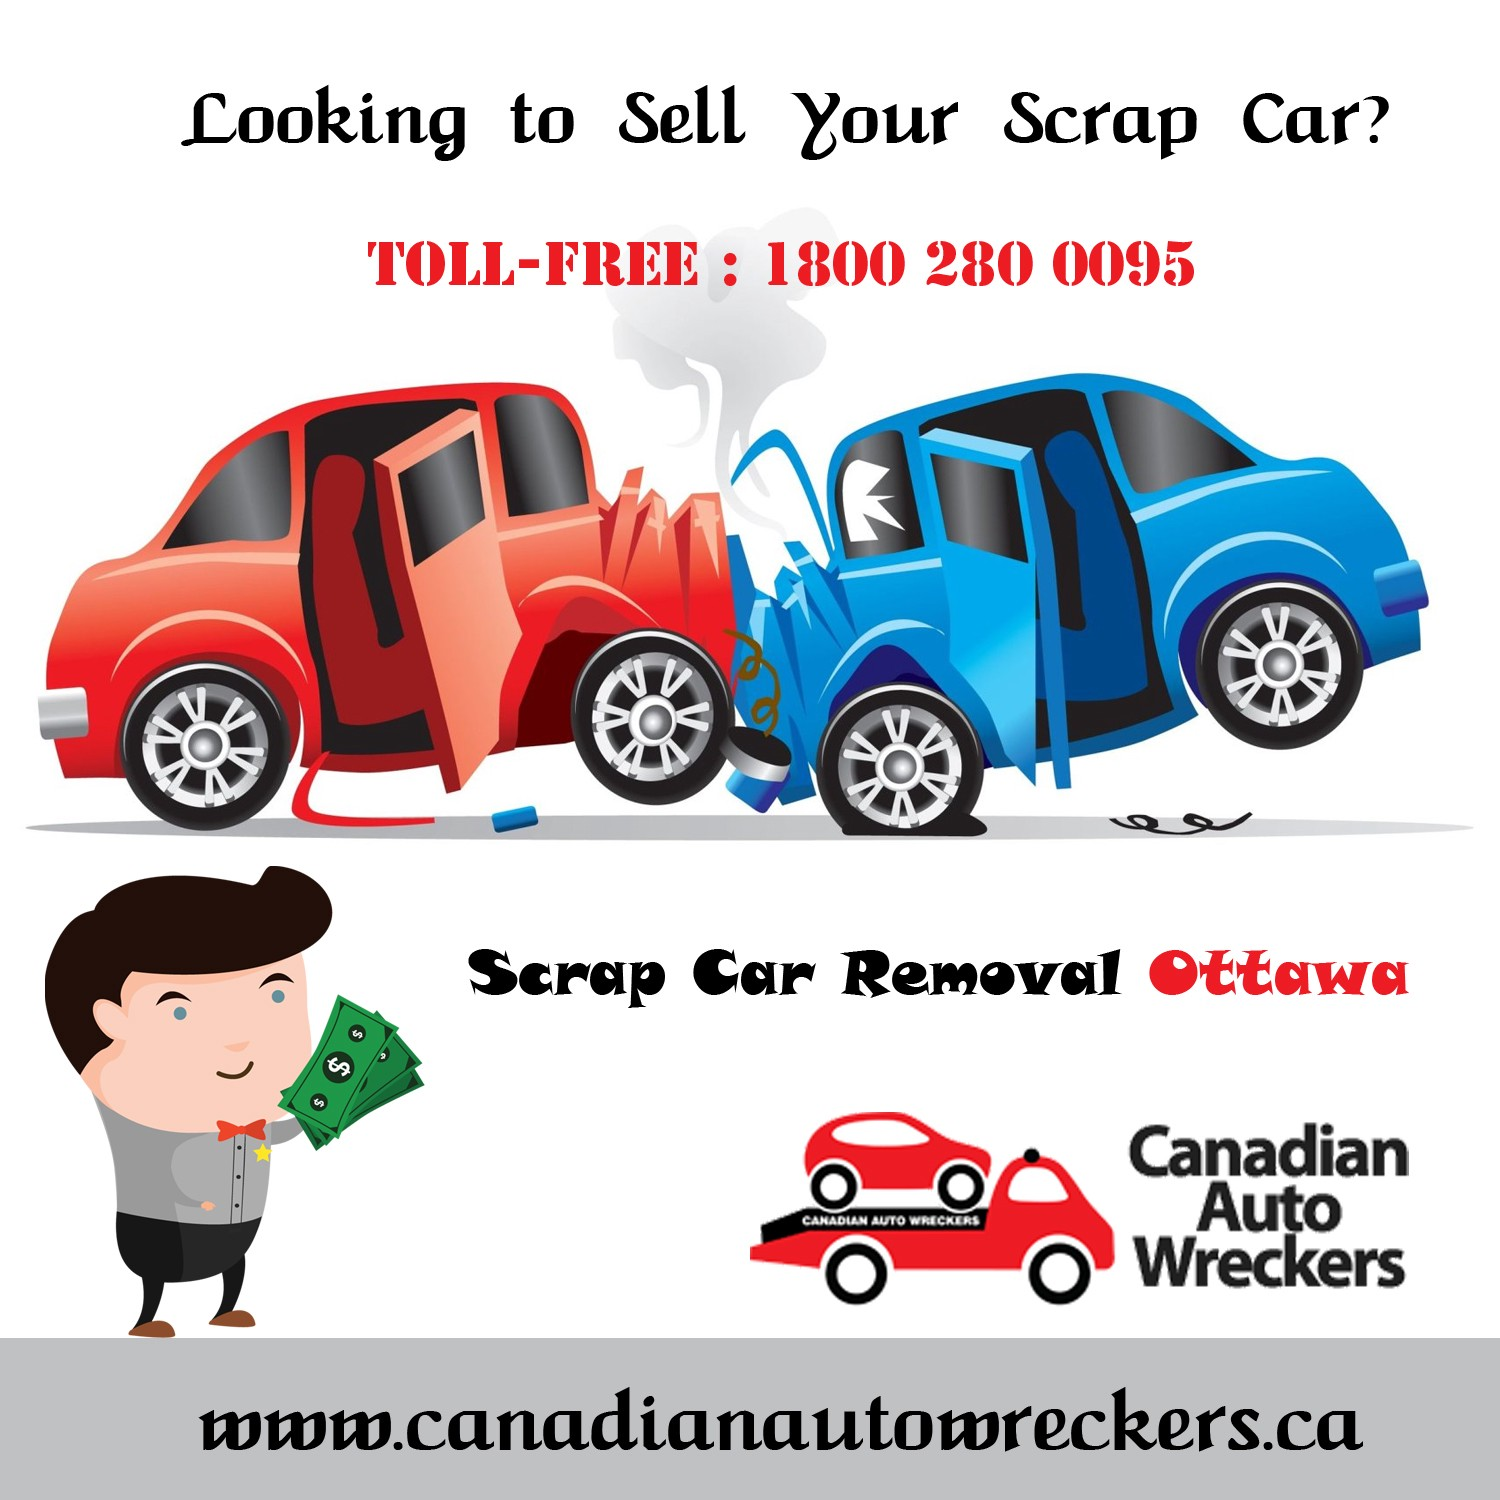 WE PAY CASH FOR YOUR SCRAP CARS — WE WILL BEAT ANY COMPETITOR IN TORONTO